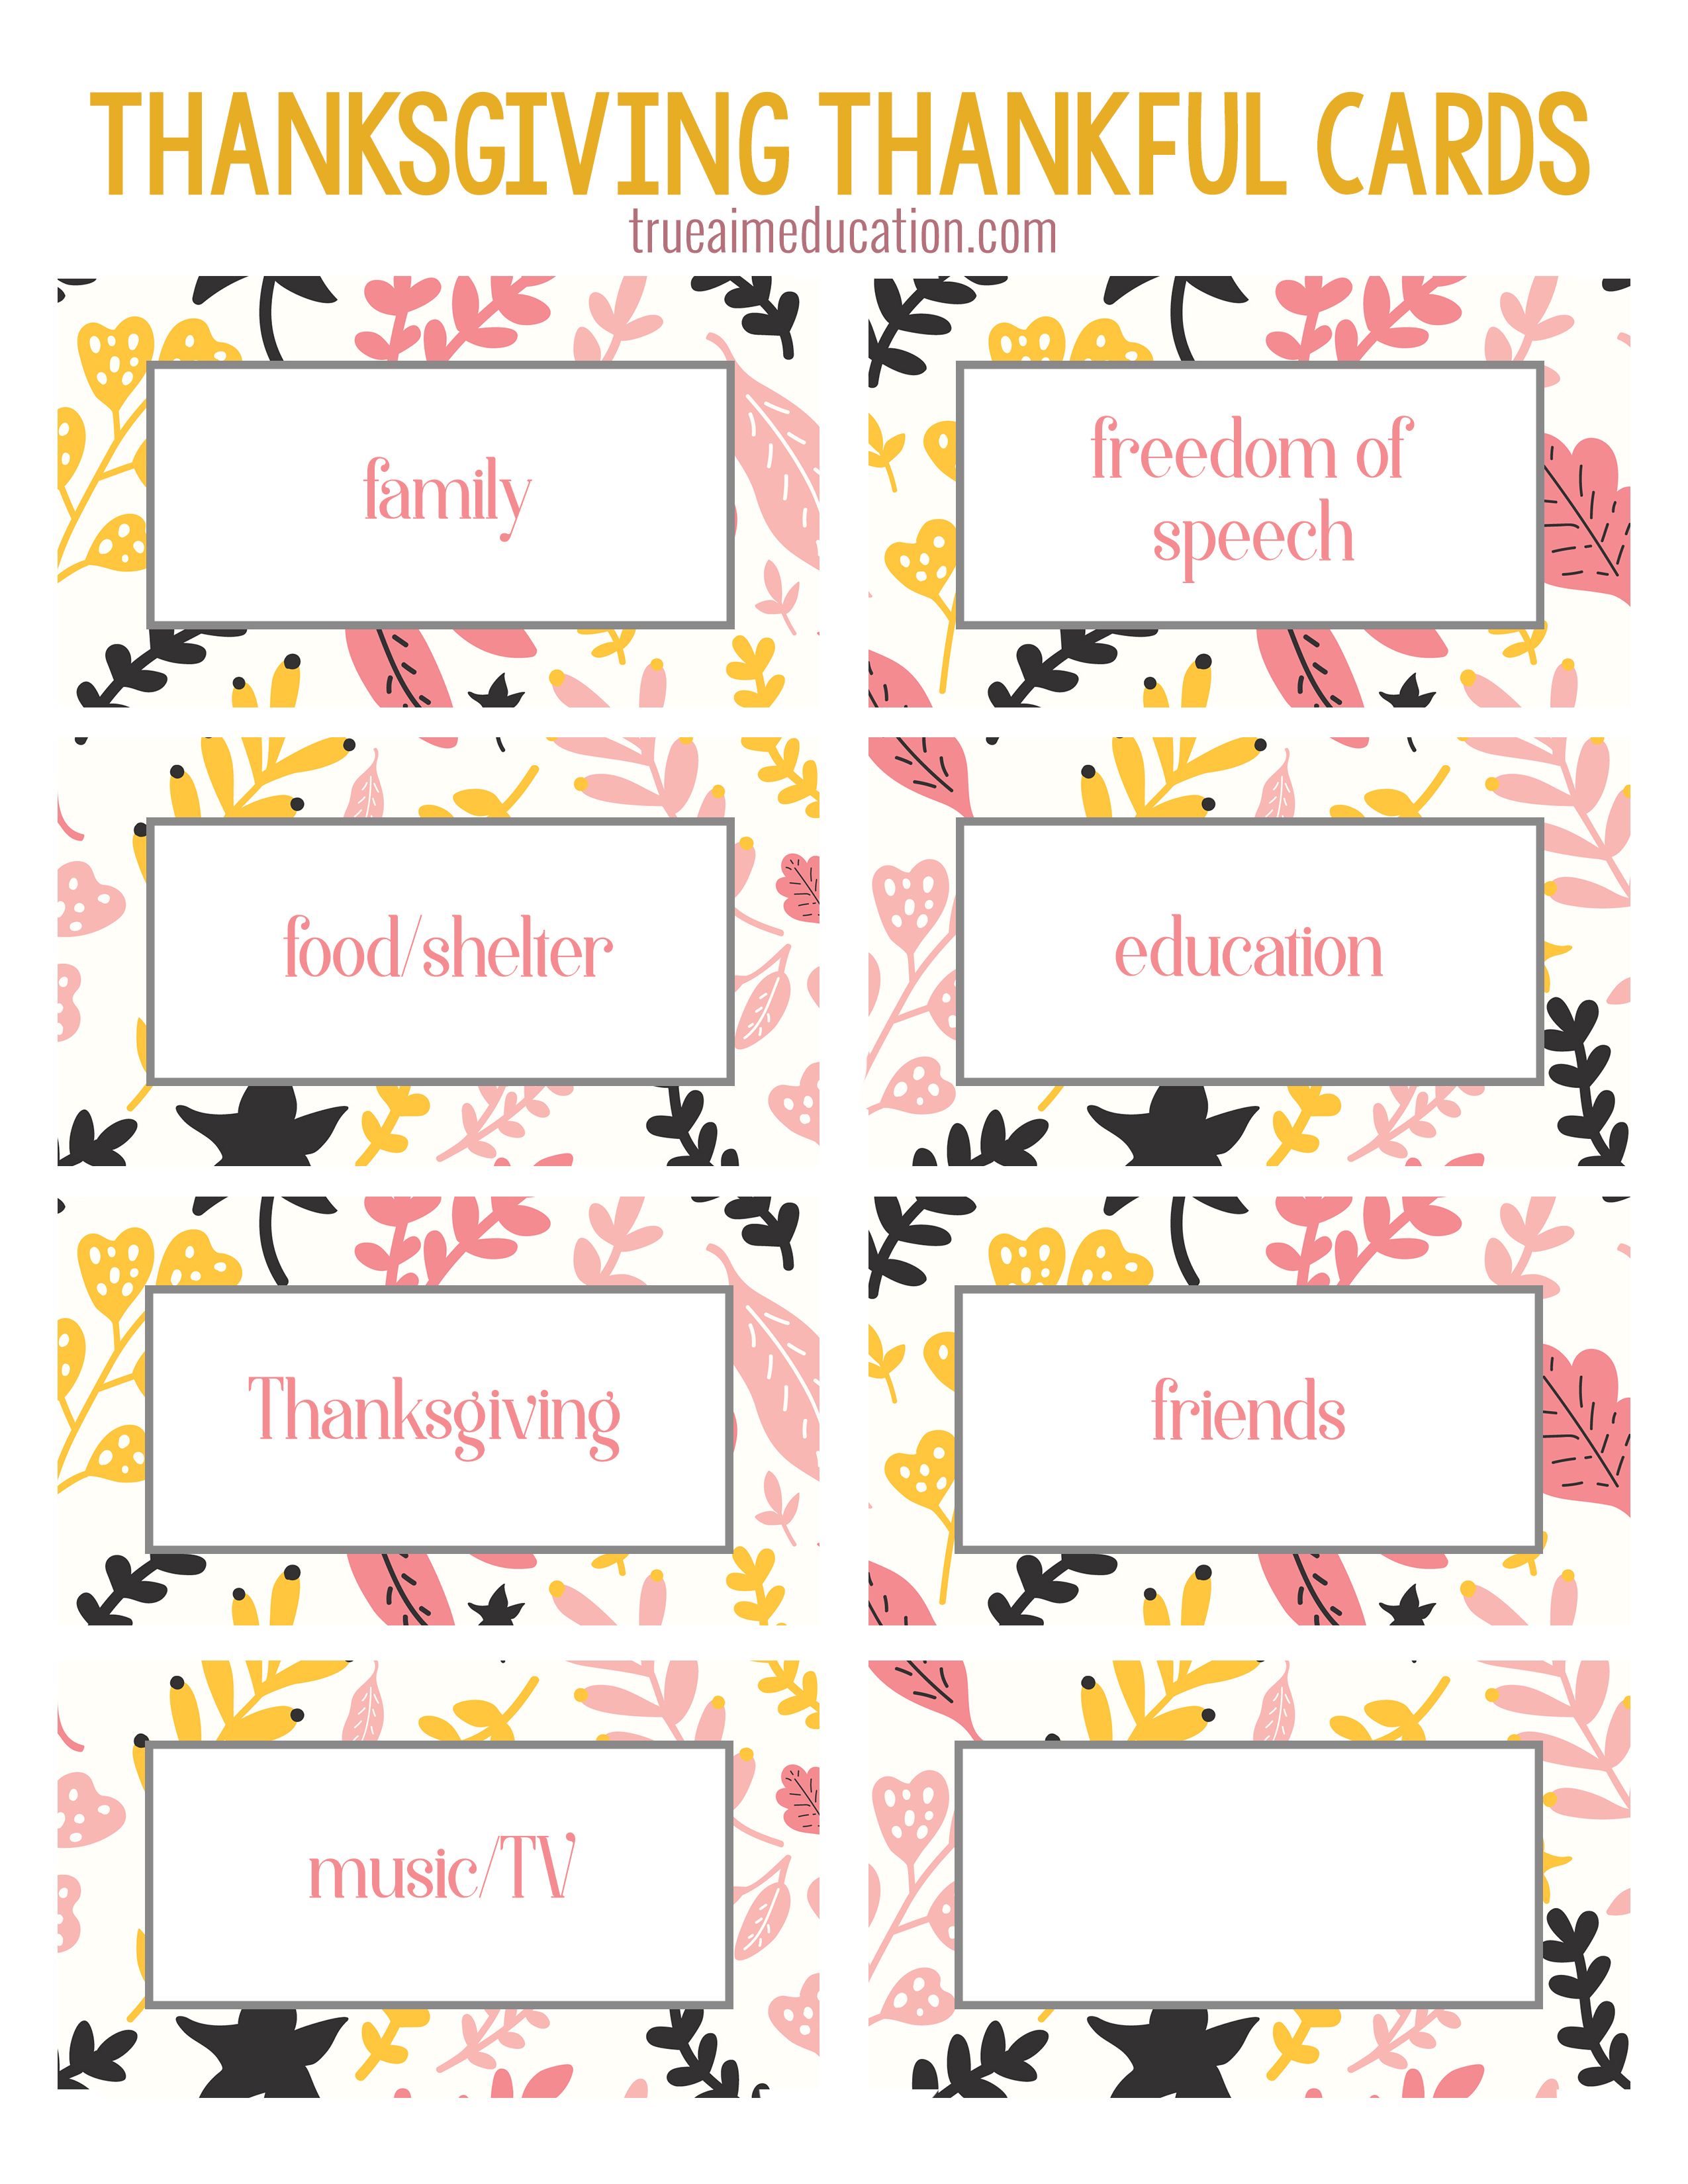 photograph about Thankful Printable named Thanksgiving Thankfulness with Totally free Printable Playing cards